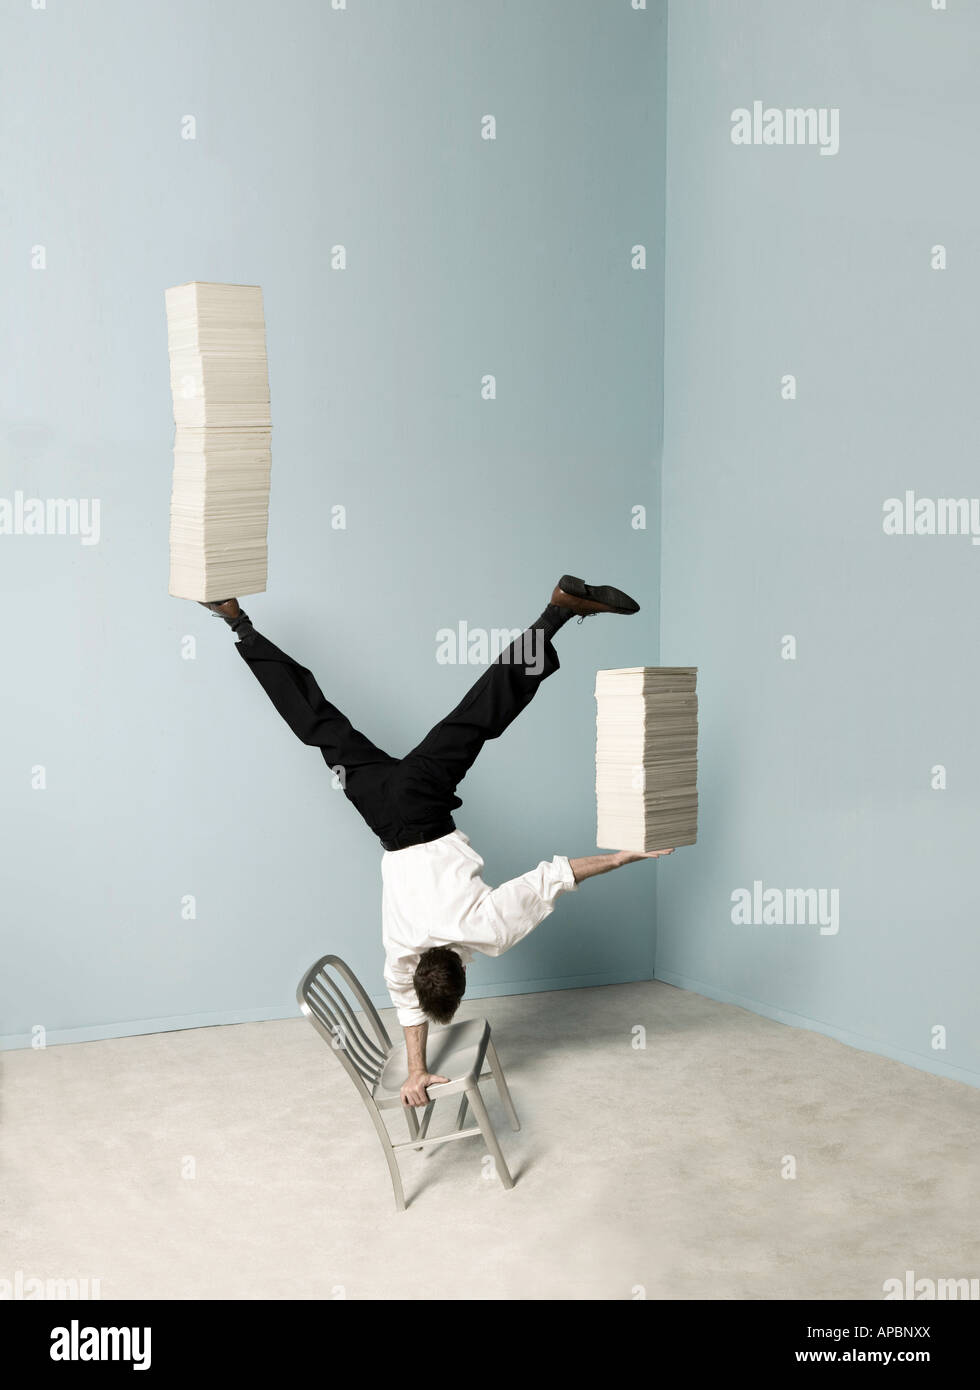 business man balances stacks of papers while doing a handstand on a chair in the office balance multi task - Stock Image